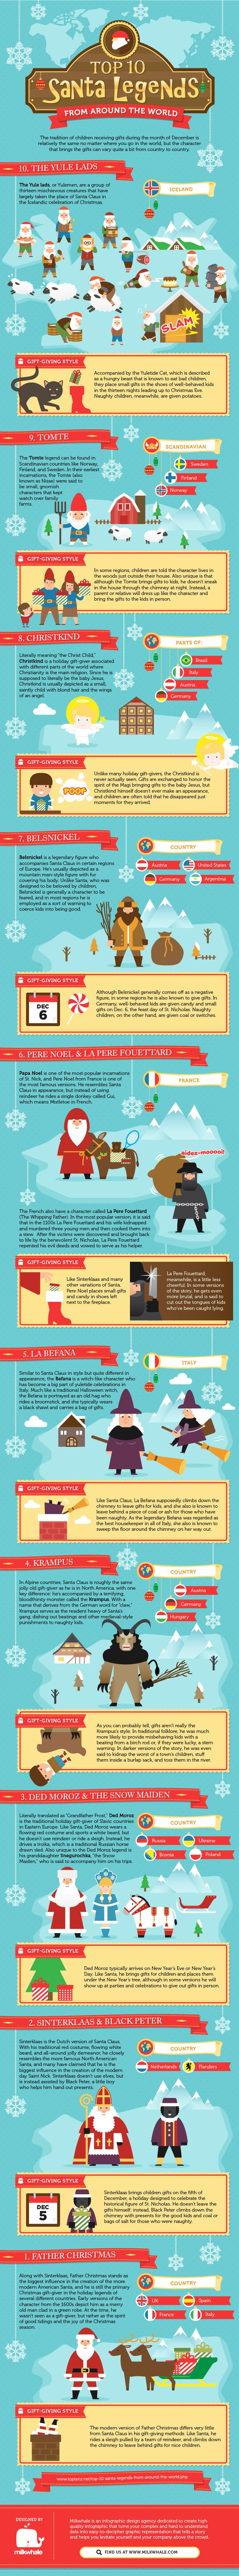 Infographic: the 10 craziest Santa legends from around the world - Matador Network